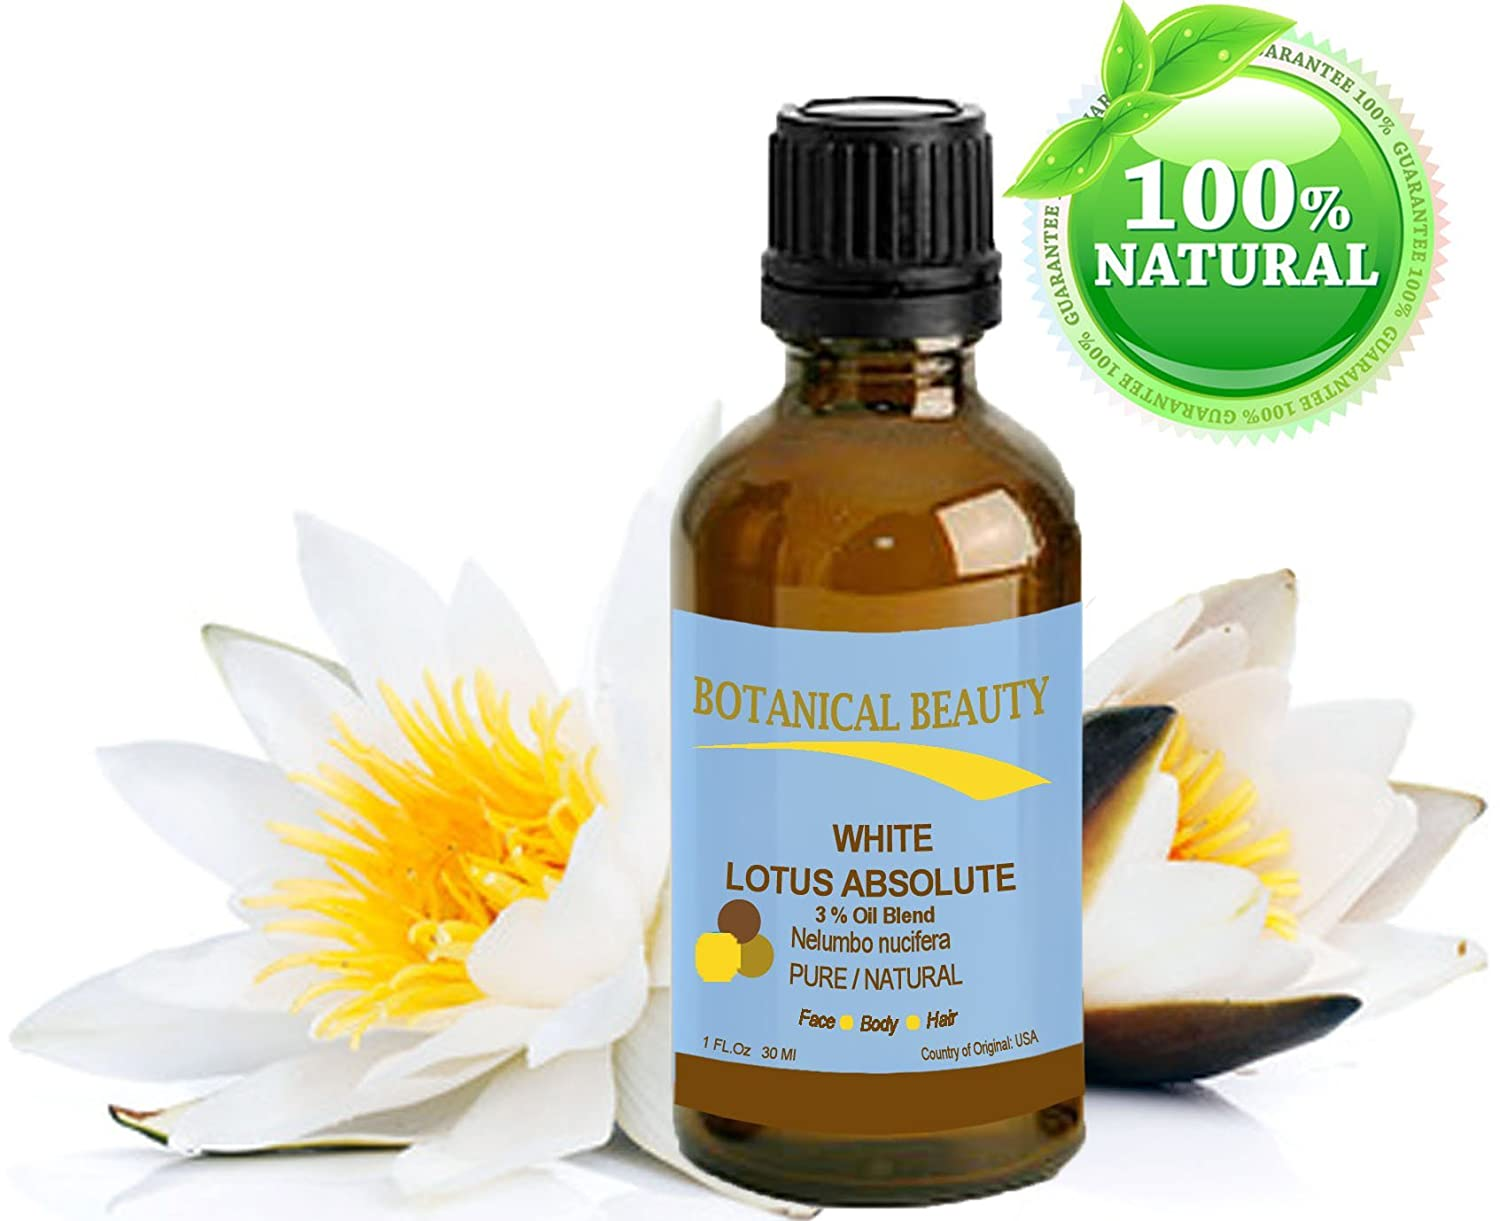 Amazon White Lotus Absolute Pure Natural 3 Oil Blend 1 Fl